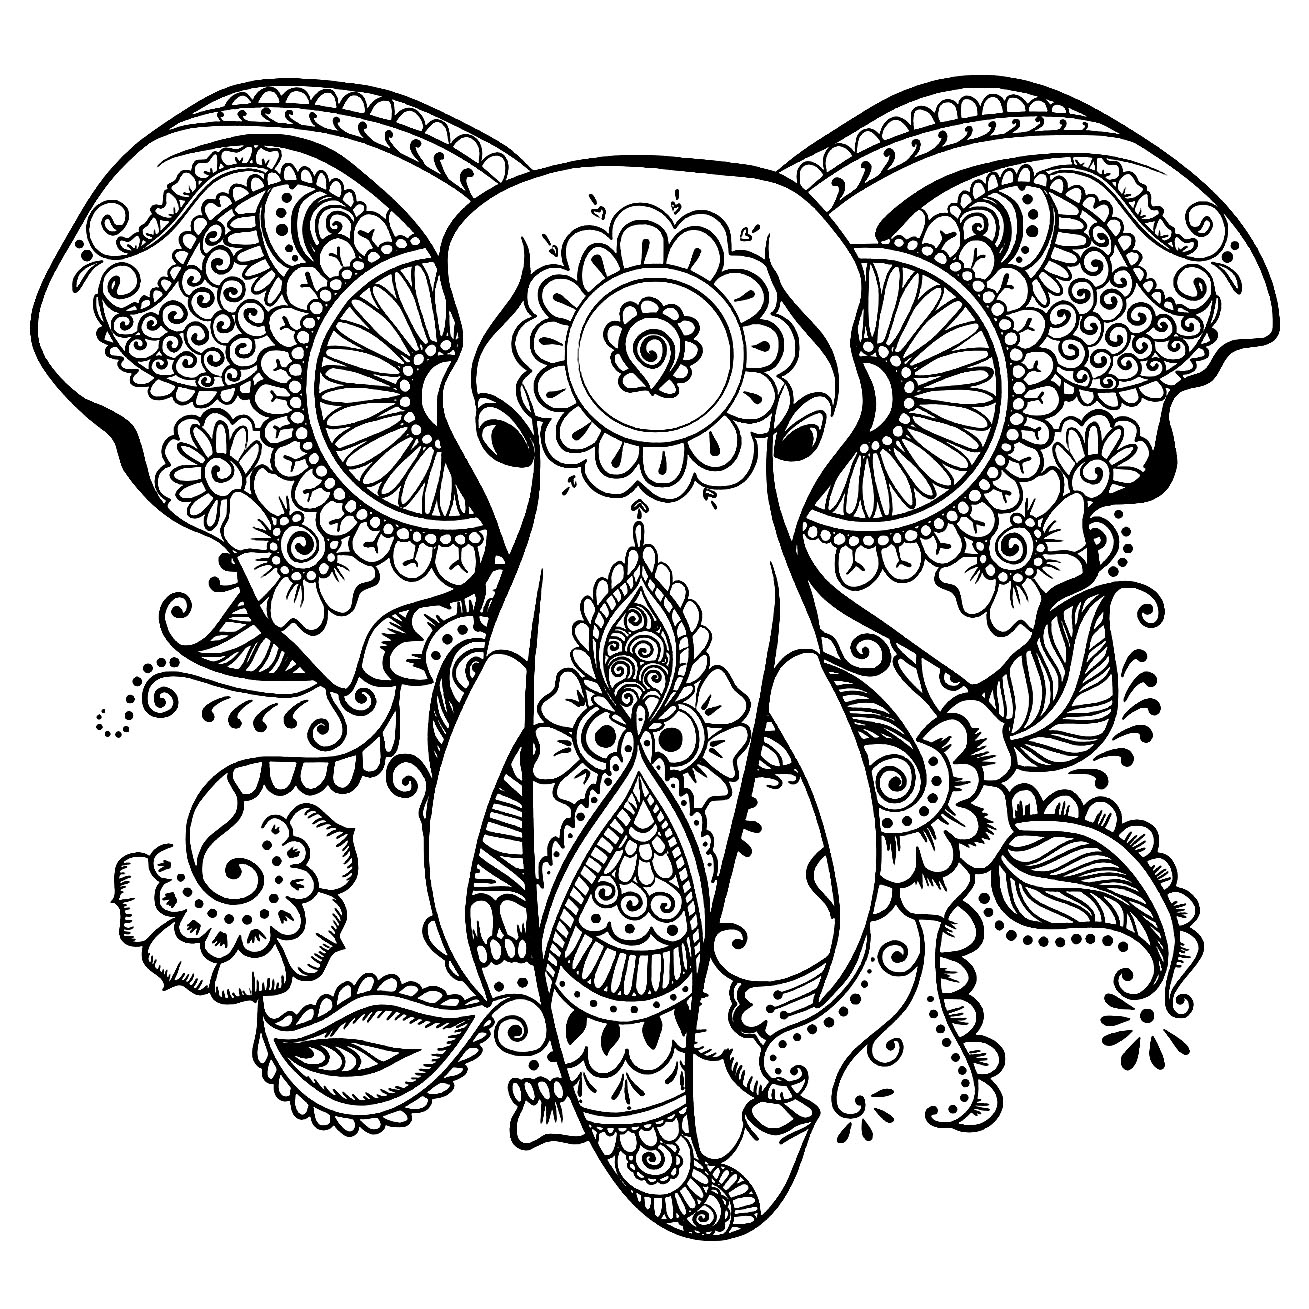 elephant coloring sheets printable elephant coloring pages free download on clipartmag printable elephant coloring sheets